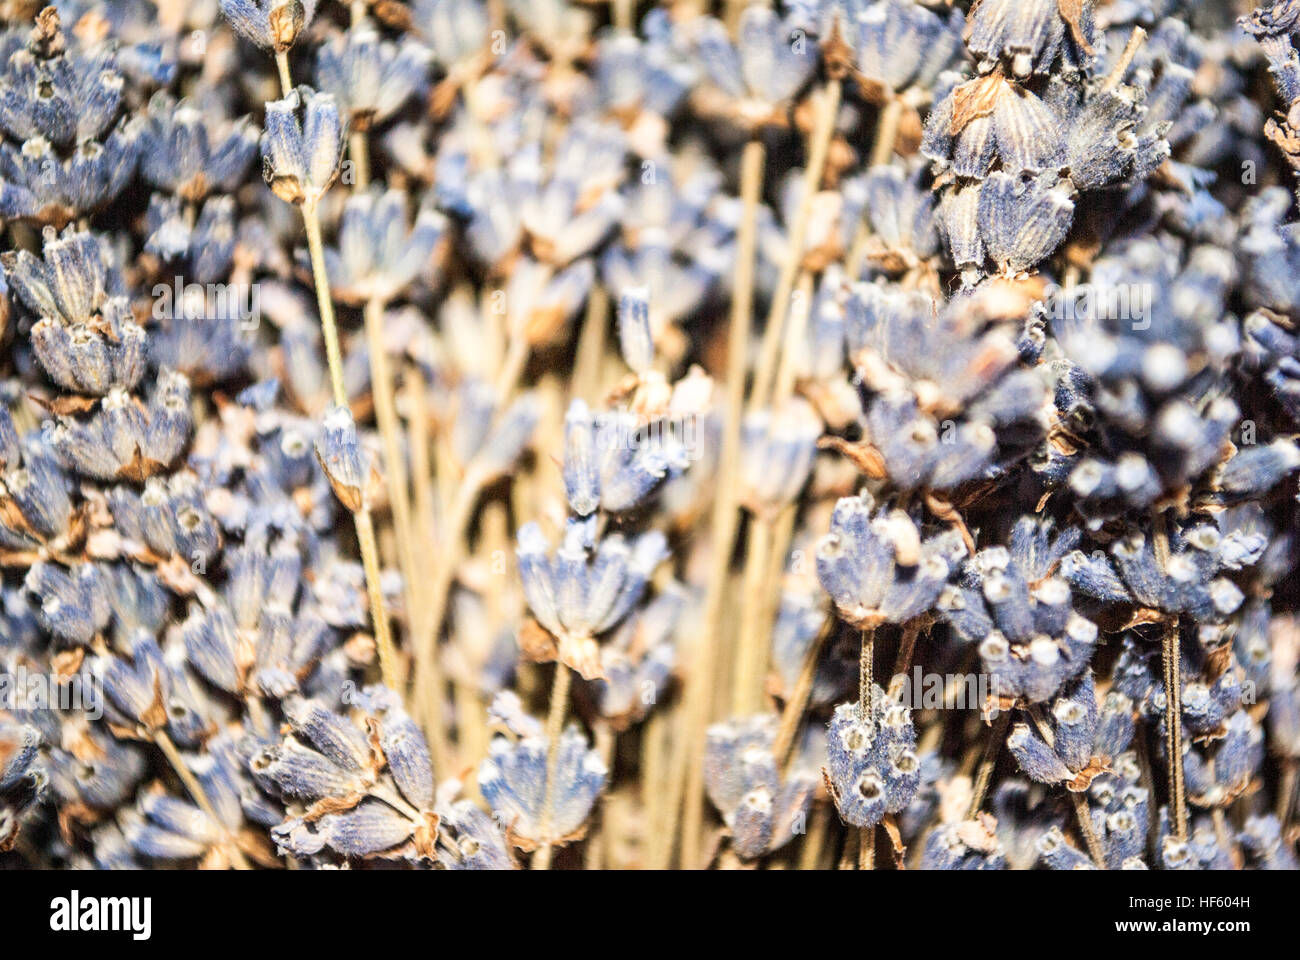 lavender stems close up - Stock Image